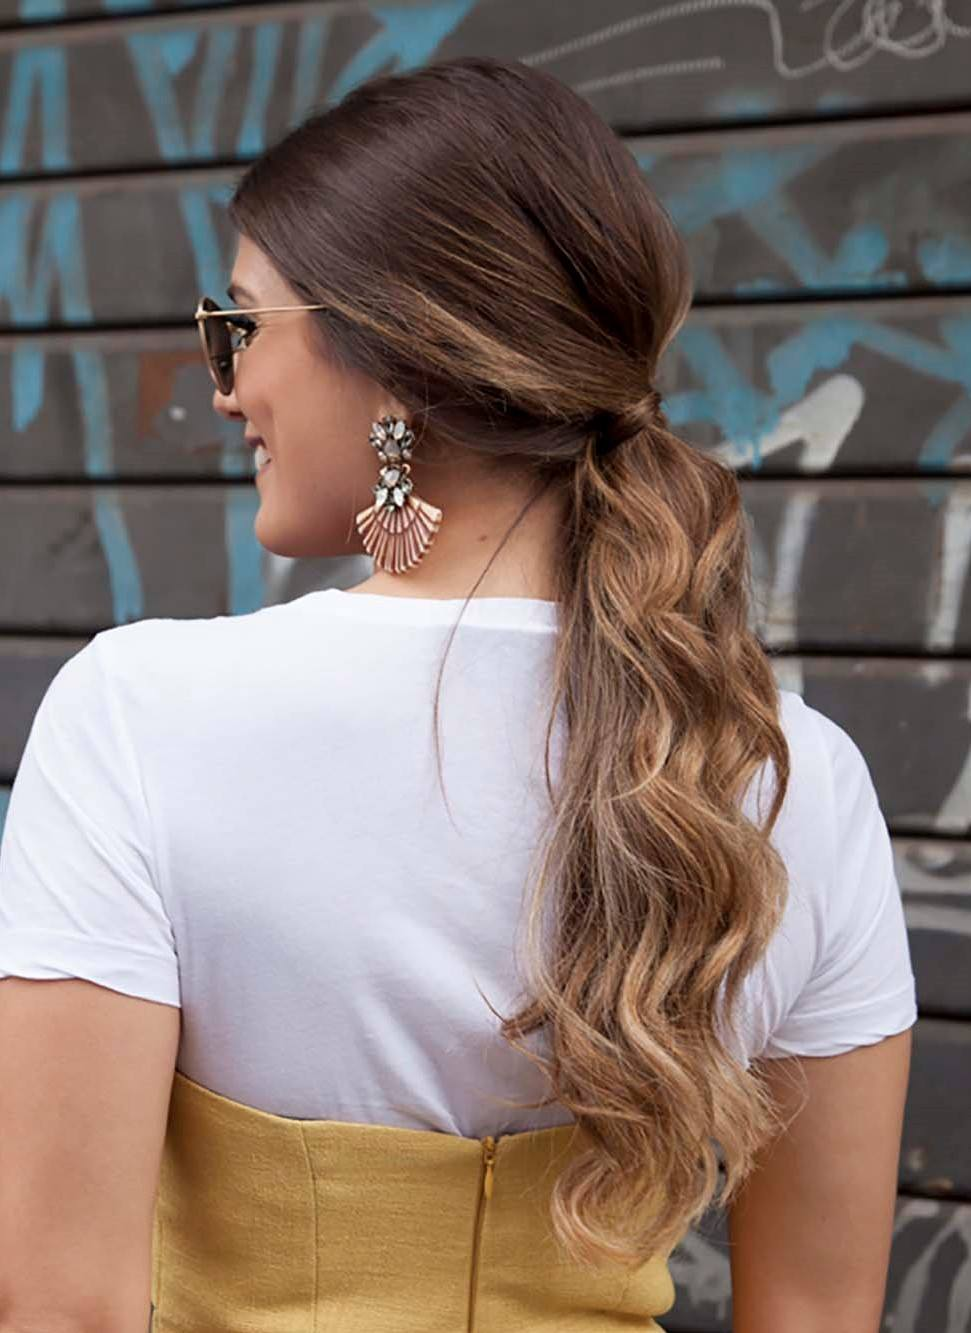 natural wavy hair: back shot of woman with naturally wavy caramel coloured hair styled into a low ponytail, wearing white and posing on the street